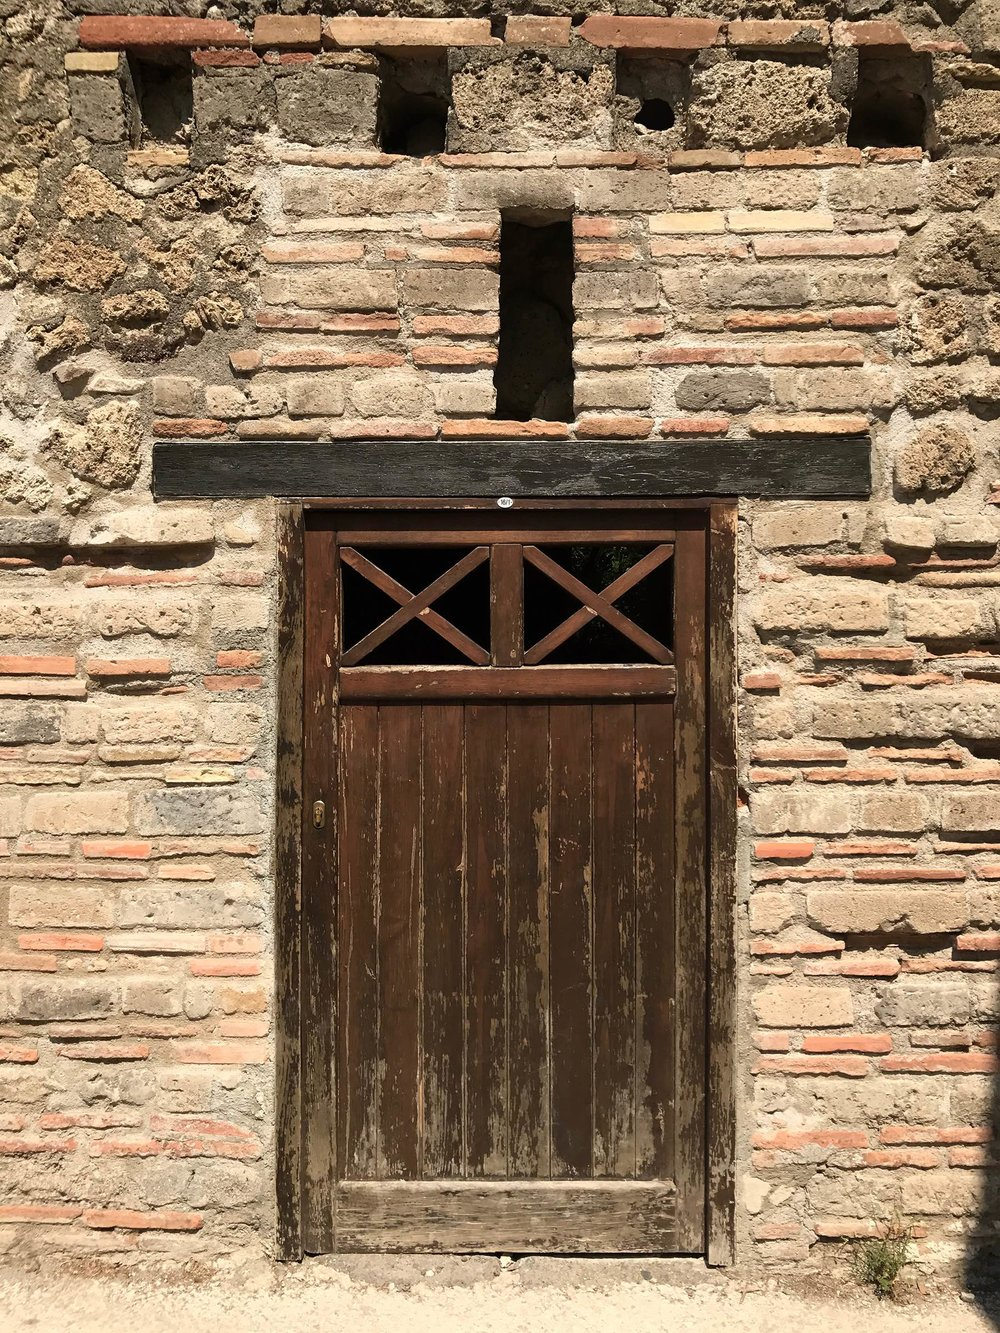 Pompei-gladiator-door.jpg